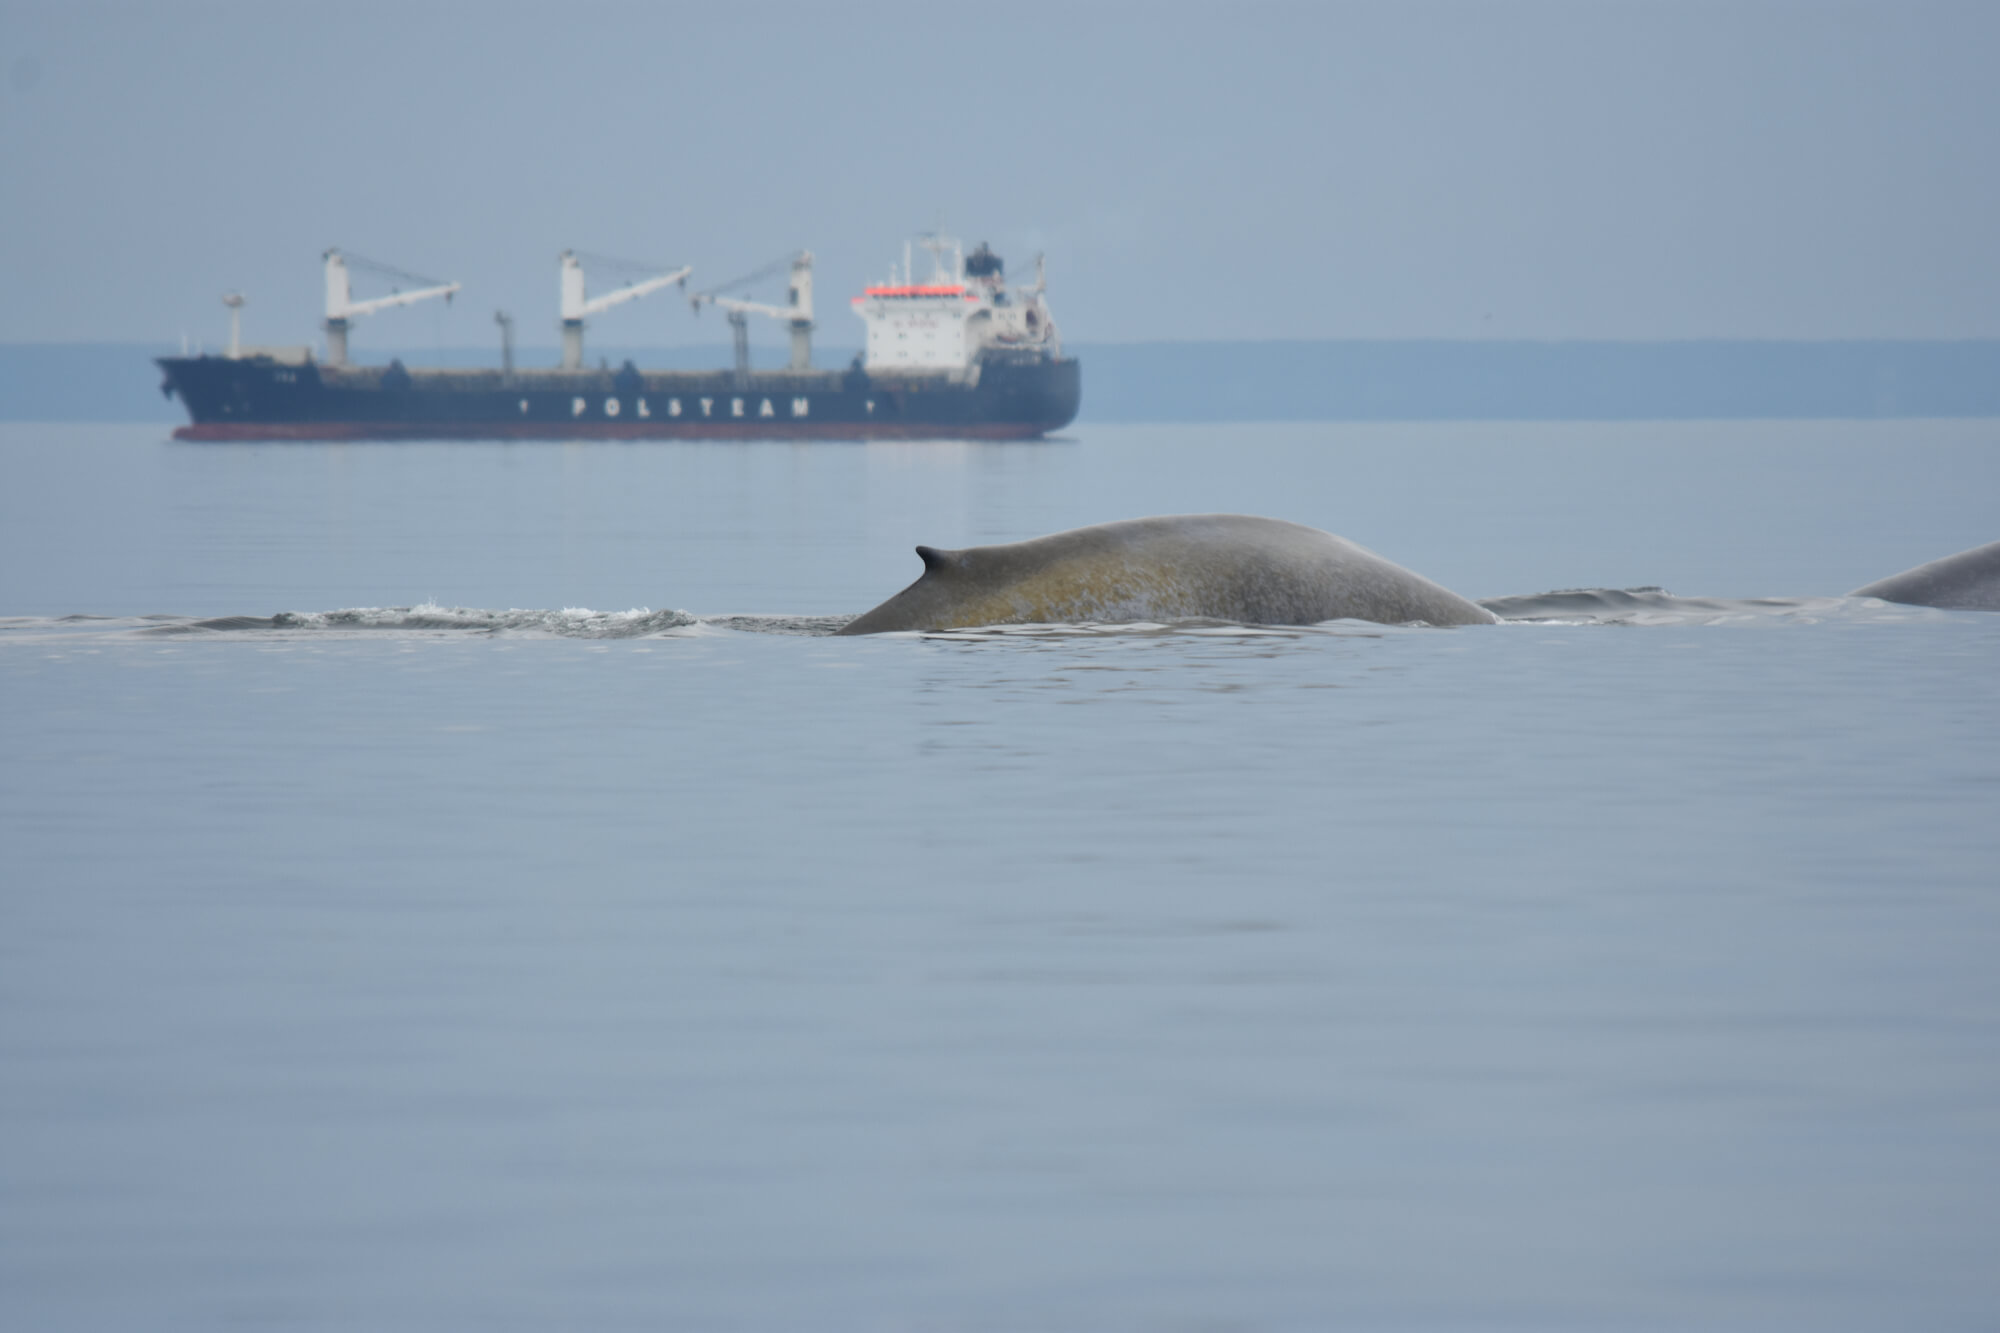 Blue whale and a ship.